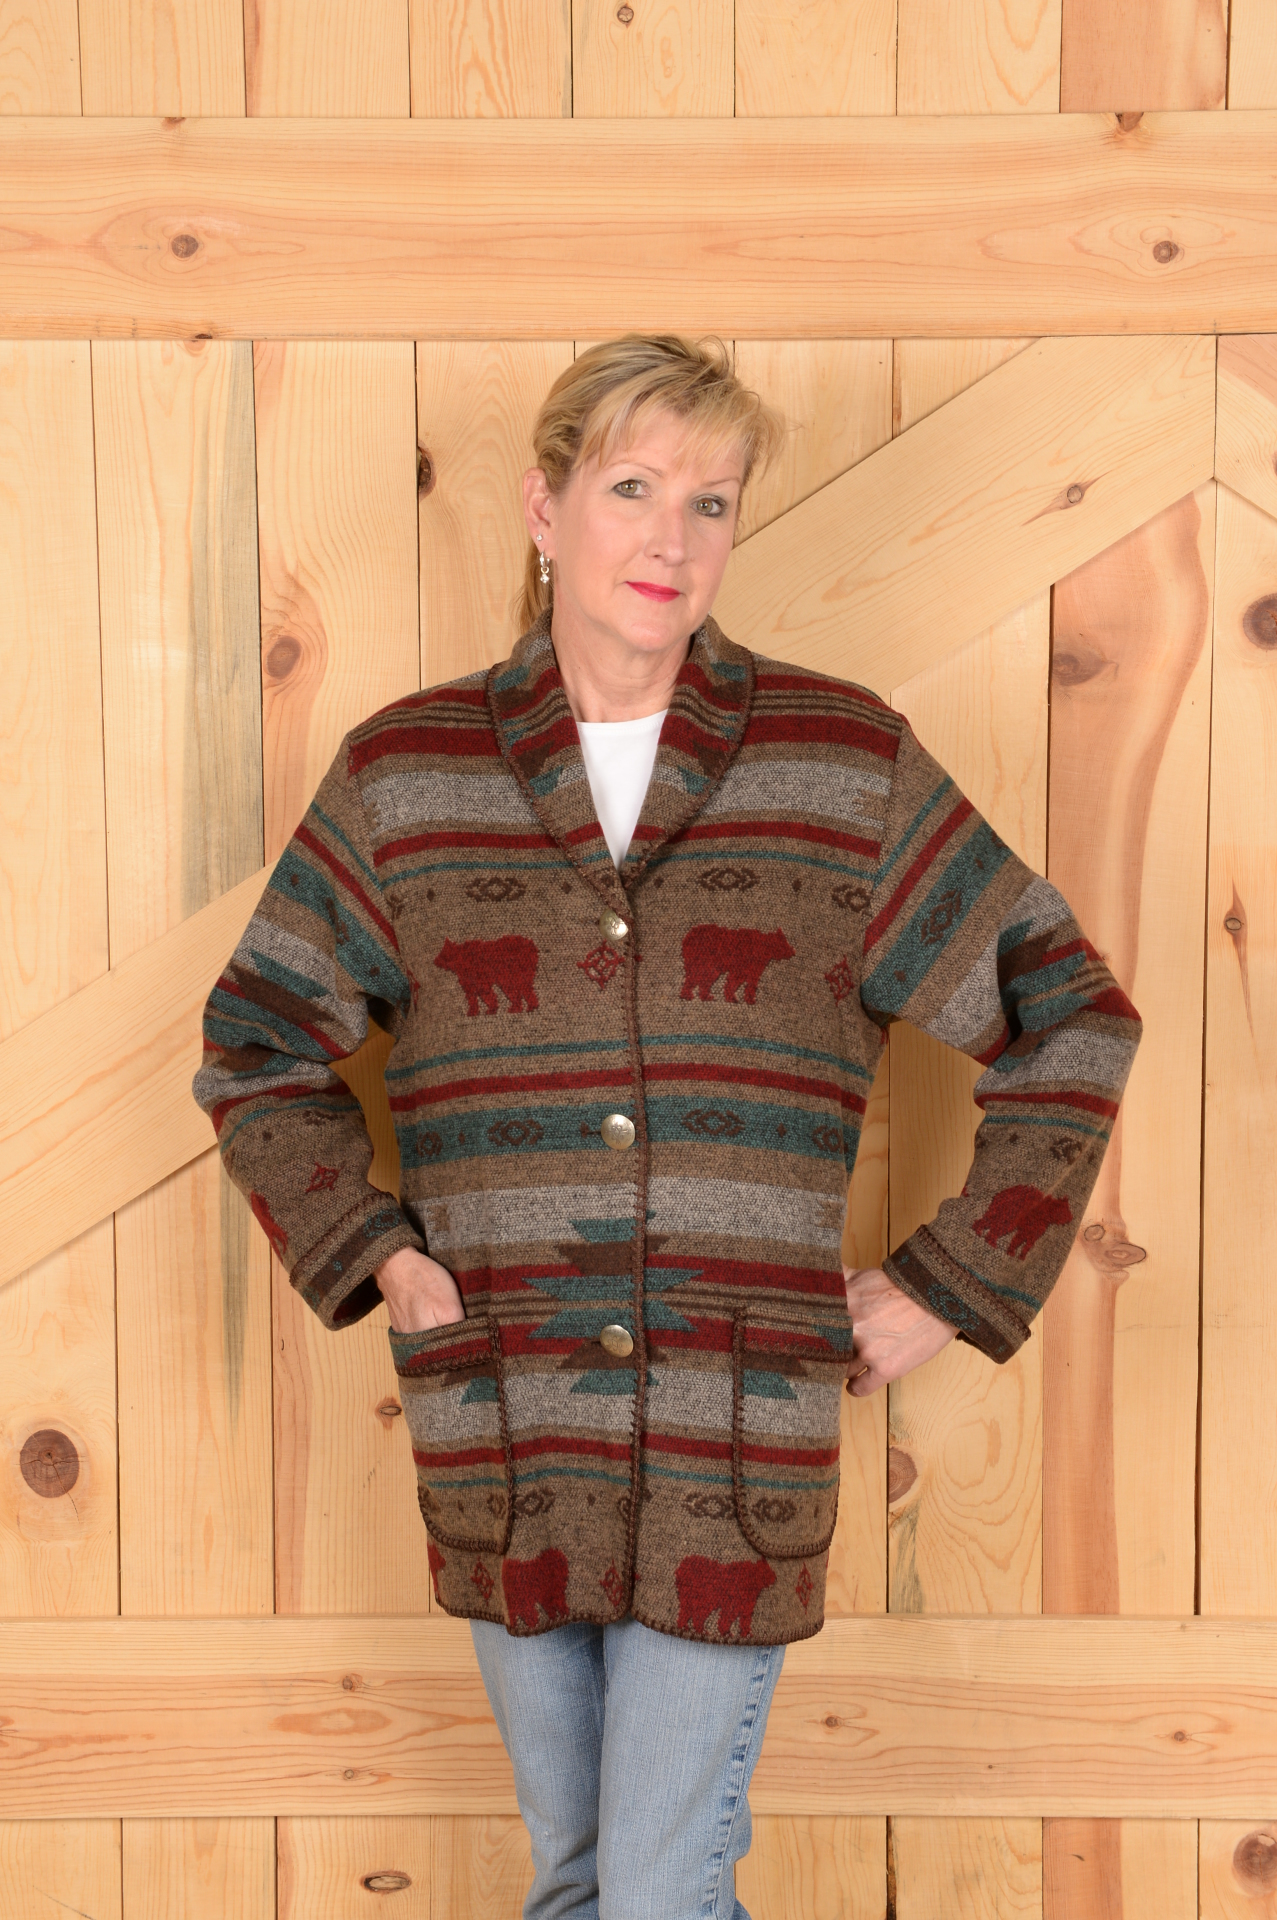 #875YS - YELLOWSTONE BEAR CAR COAT - $179.95        OUTLET SALE $99 -- S-L-XXL ONLY